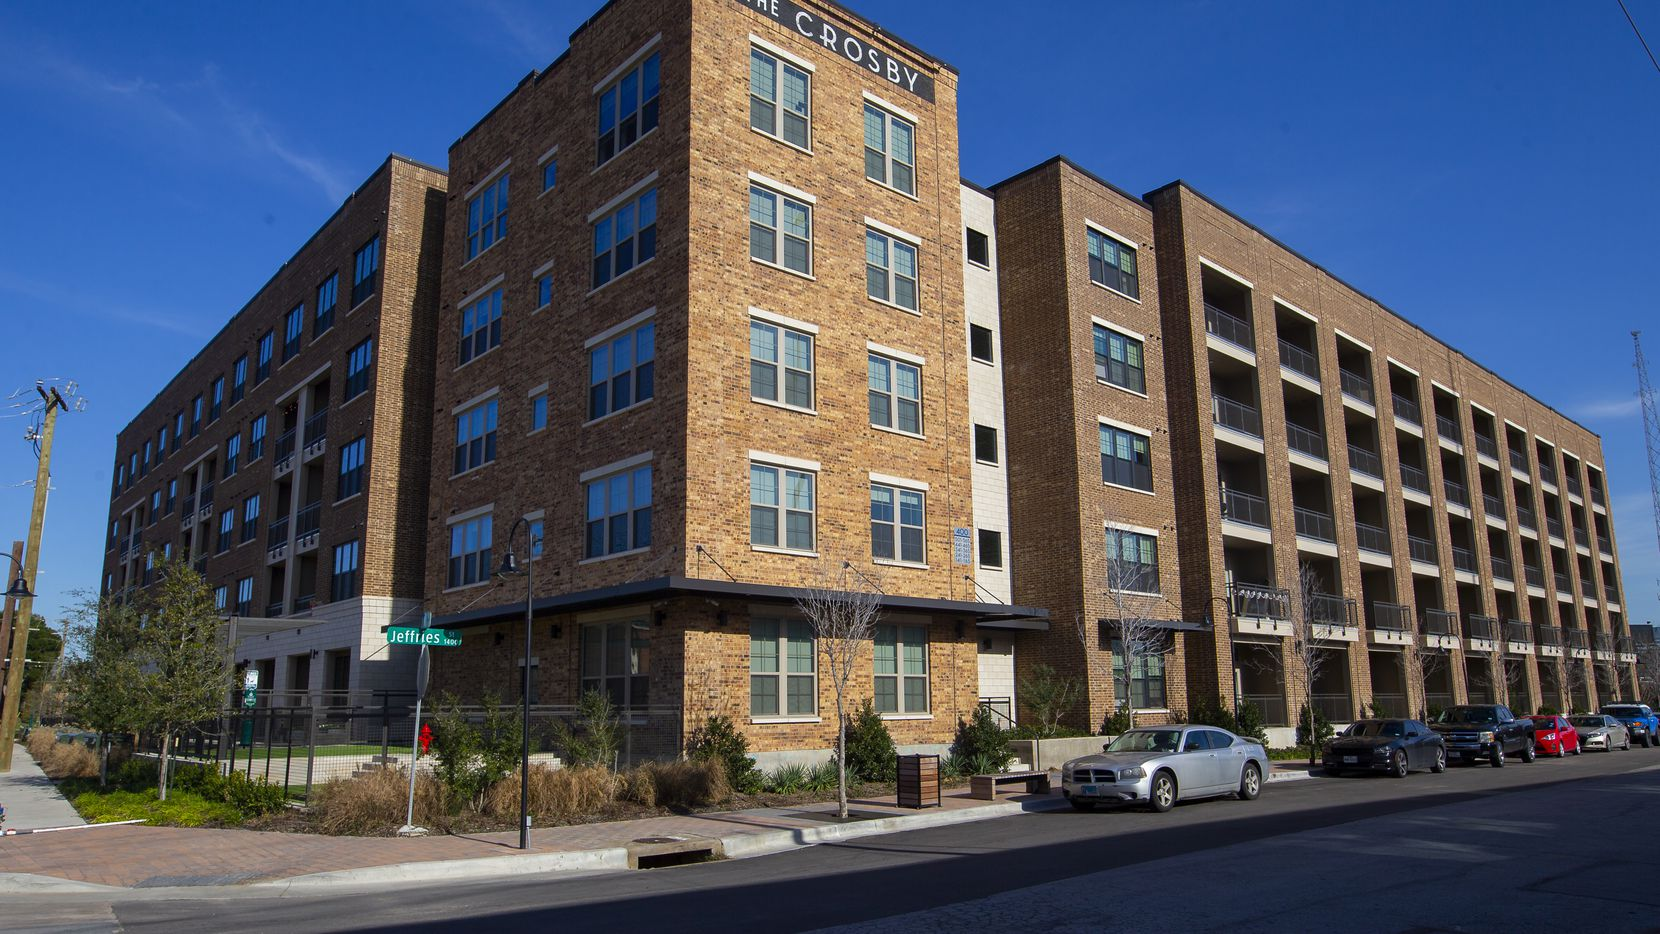 The Crosby apartments at 400 S. Hall St. in Deep Ellum have 336 units.